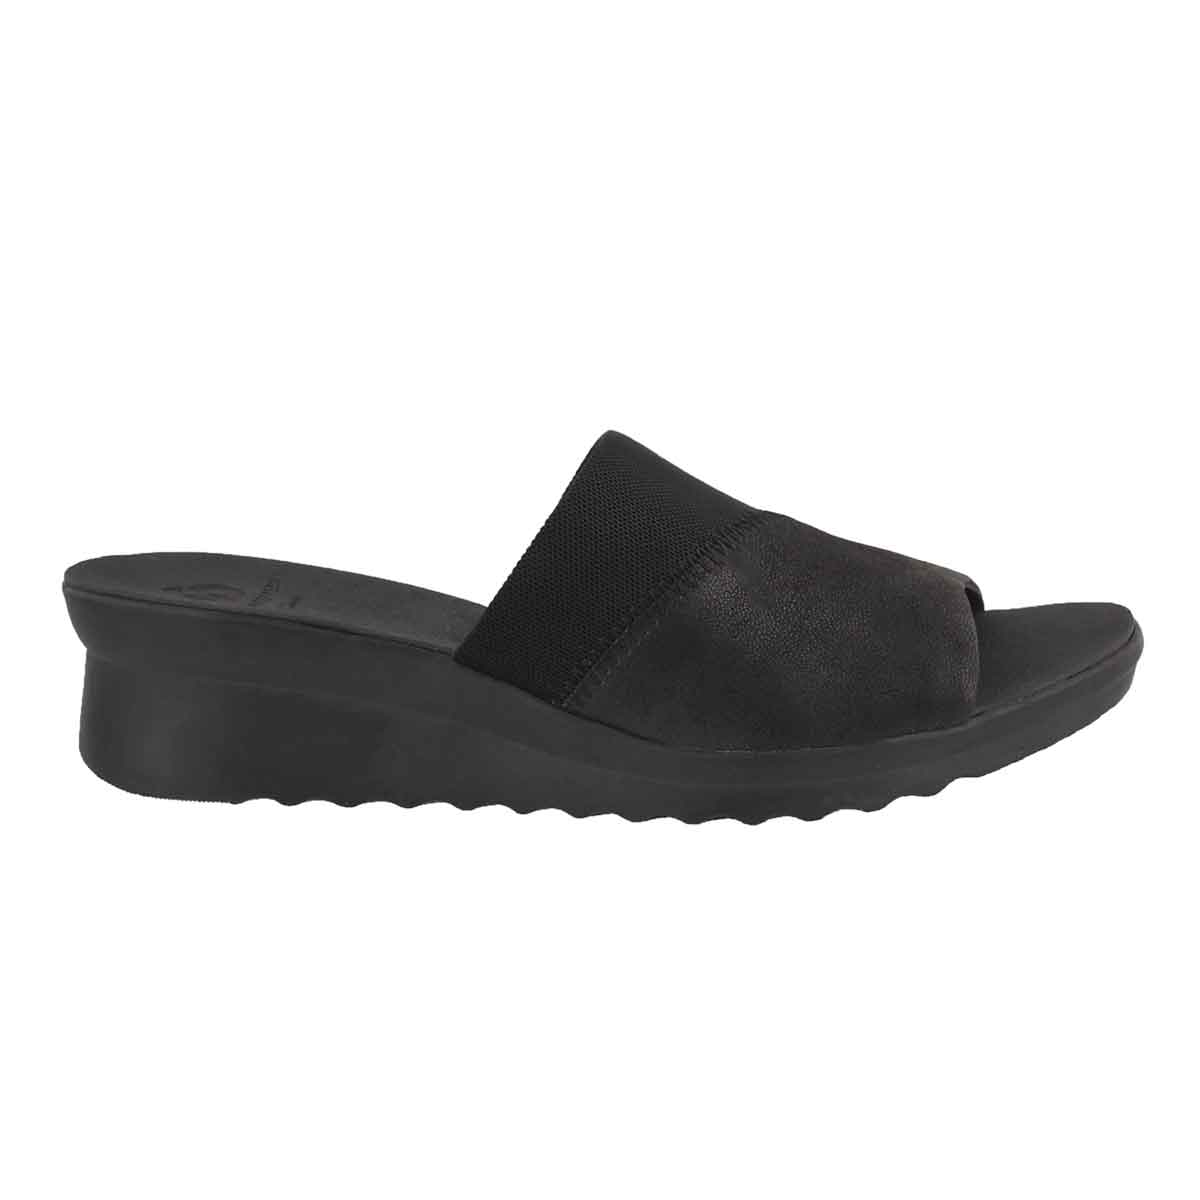 Lds Caddell Ivy black slide wedge sandal